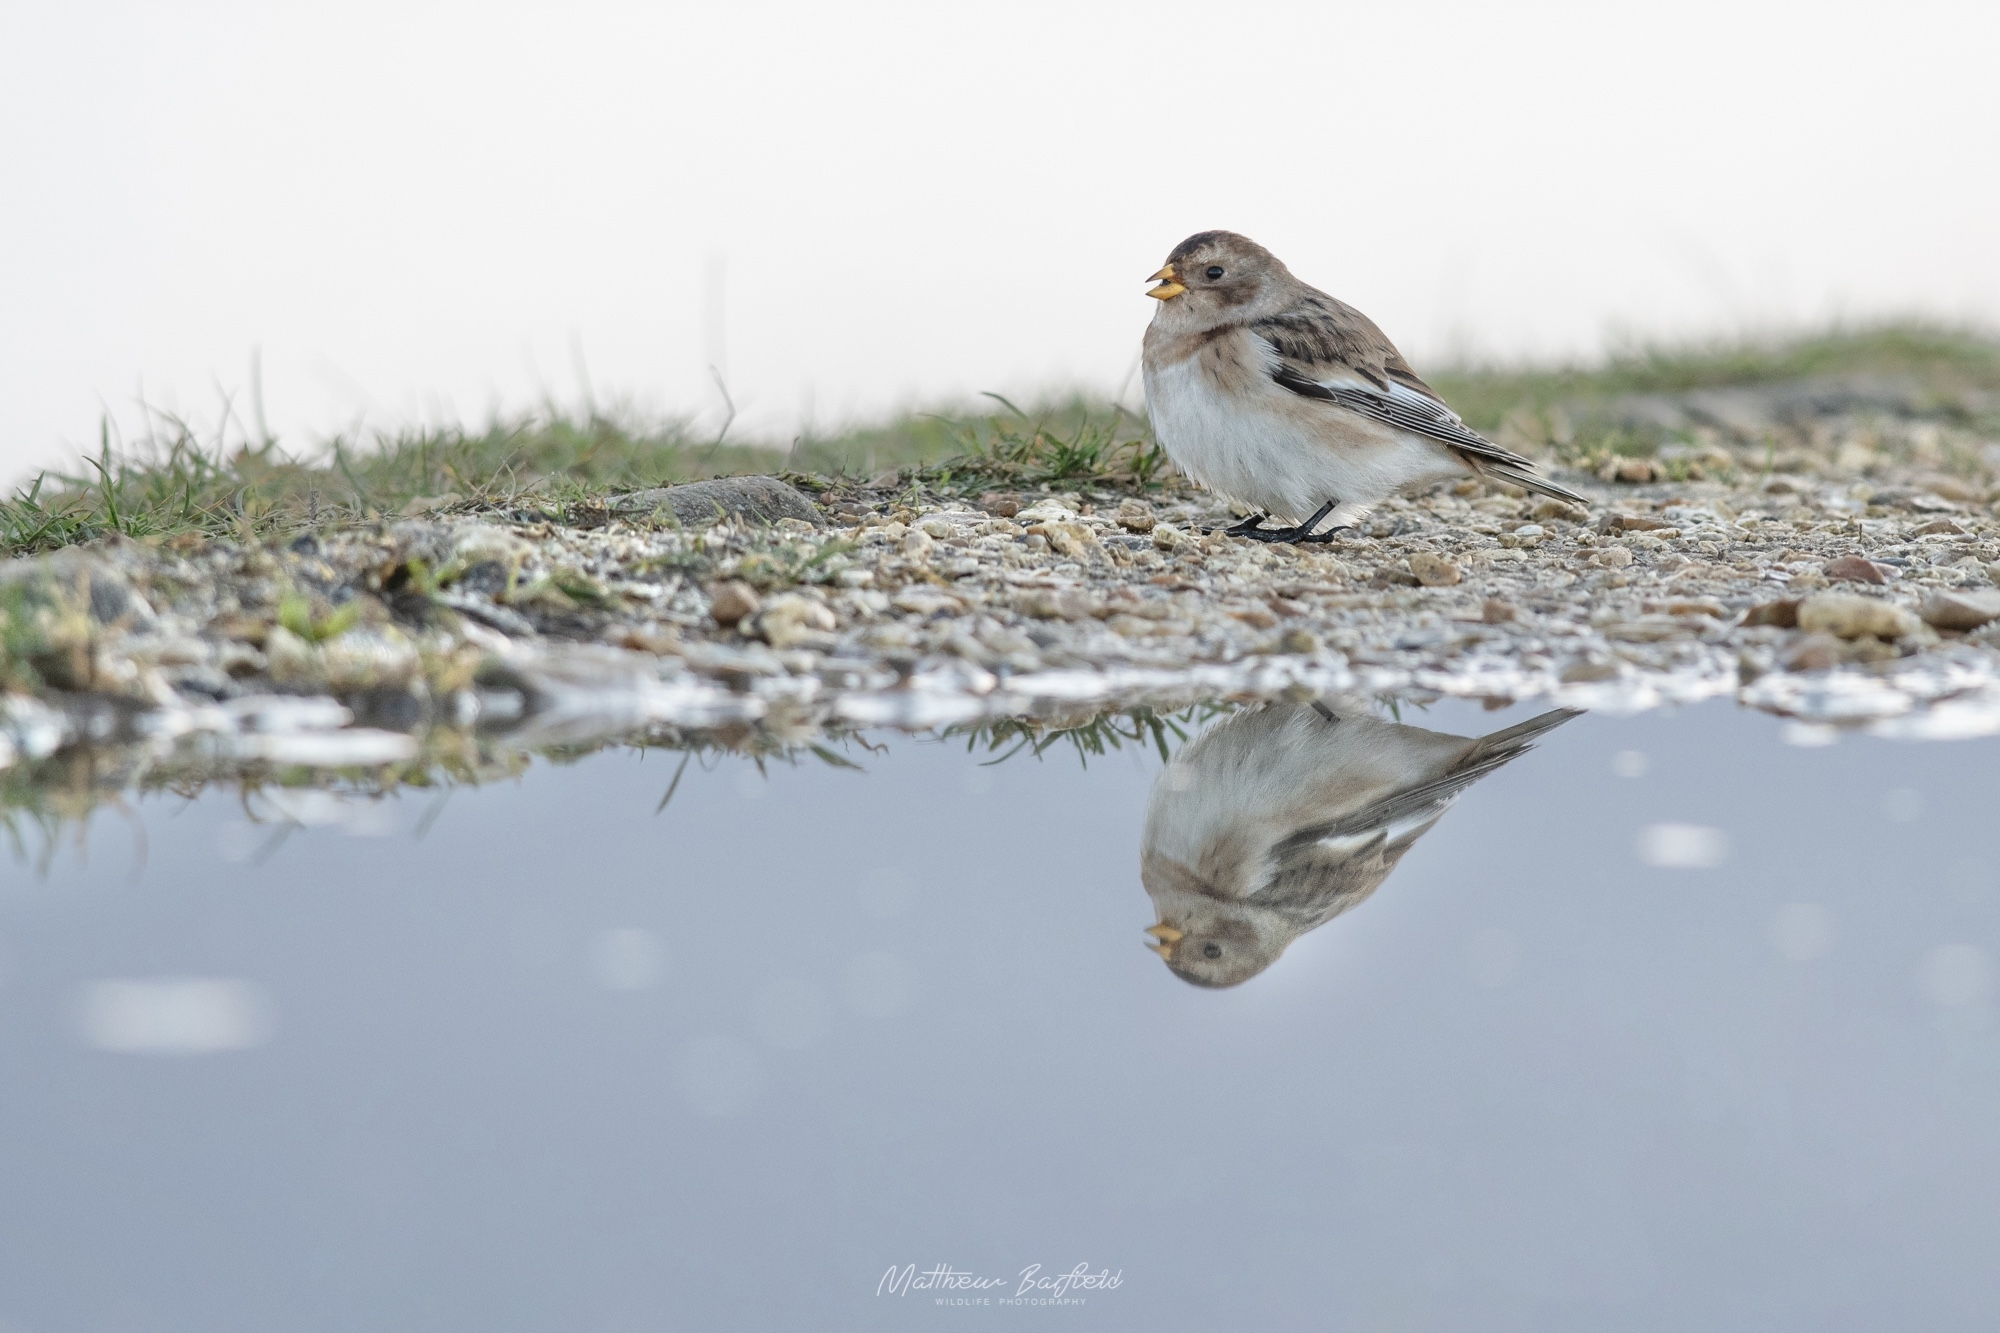 Matthew Barfield Wildlife Photography New Forest Birds  snow bunting